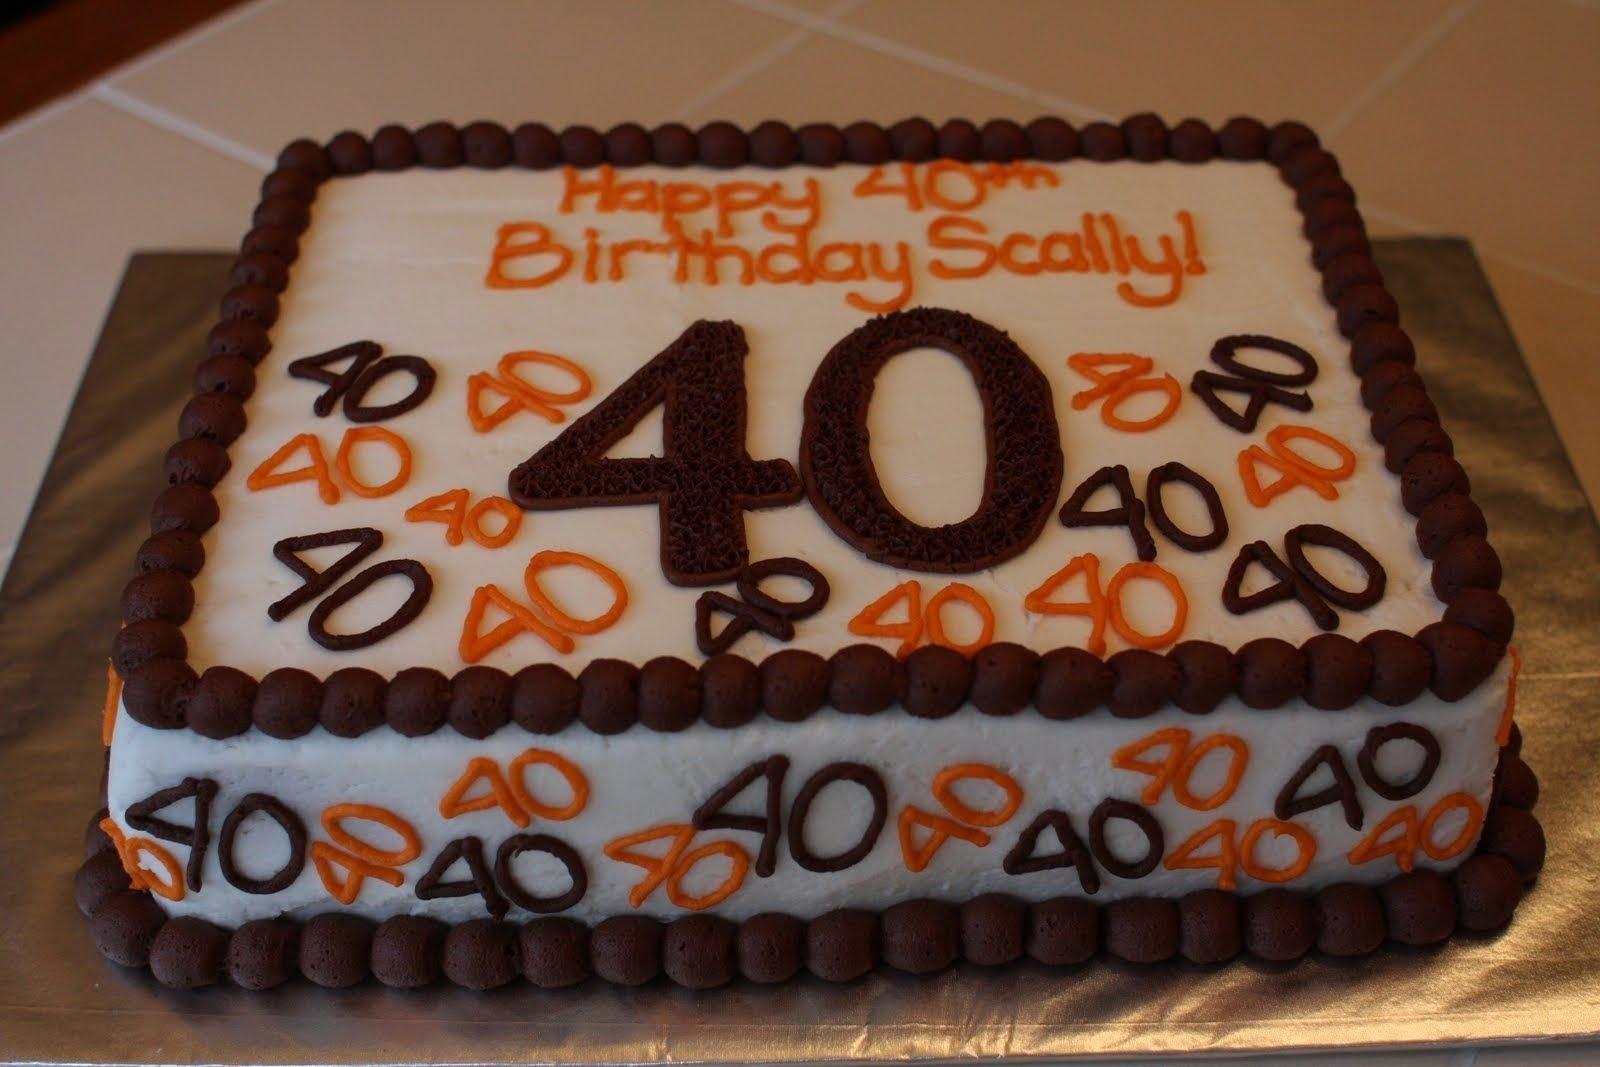 10 Stunning 40 Year Old Birthday Cake Ideas 40th birthday cake ideas for men google search let them eat